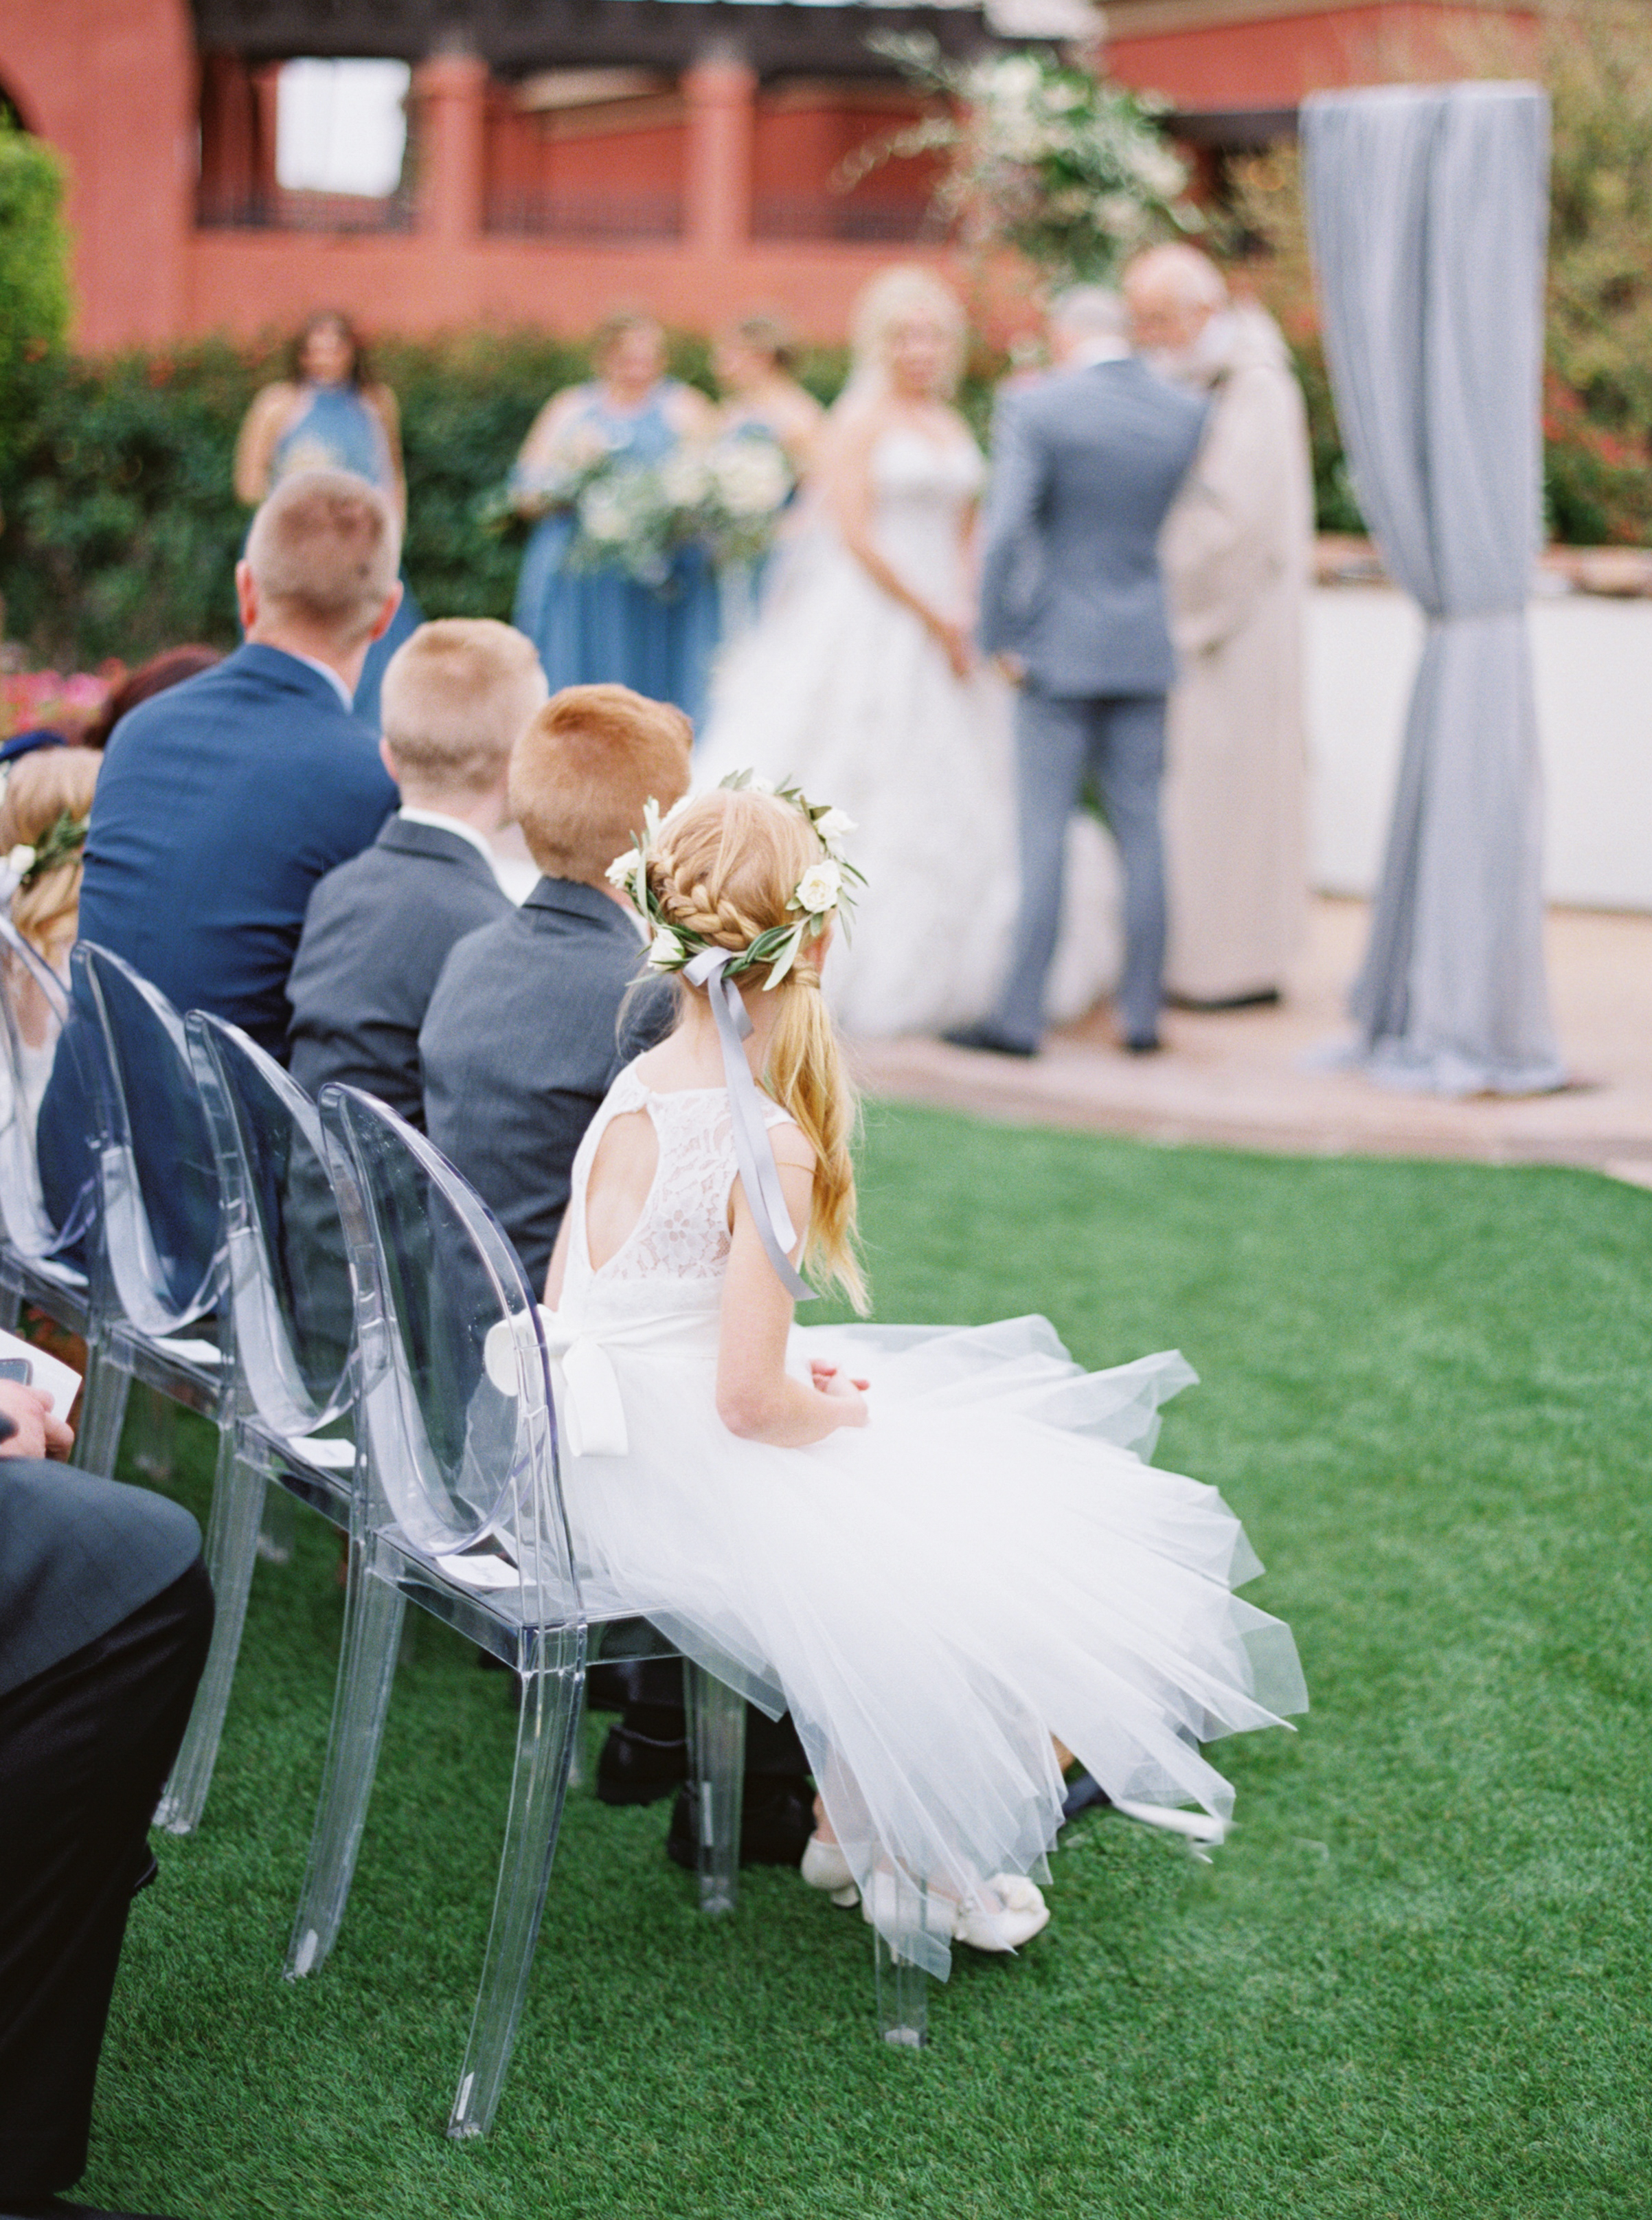 31 flower girl ring bearer watch ceremony bride groom exchange vows outdoor wedding rain on wedding day Life Design Events photos by Melissa Jill Photography.jpg